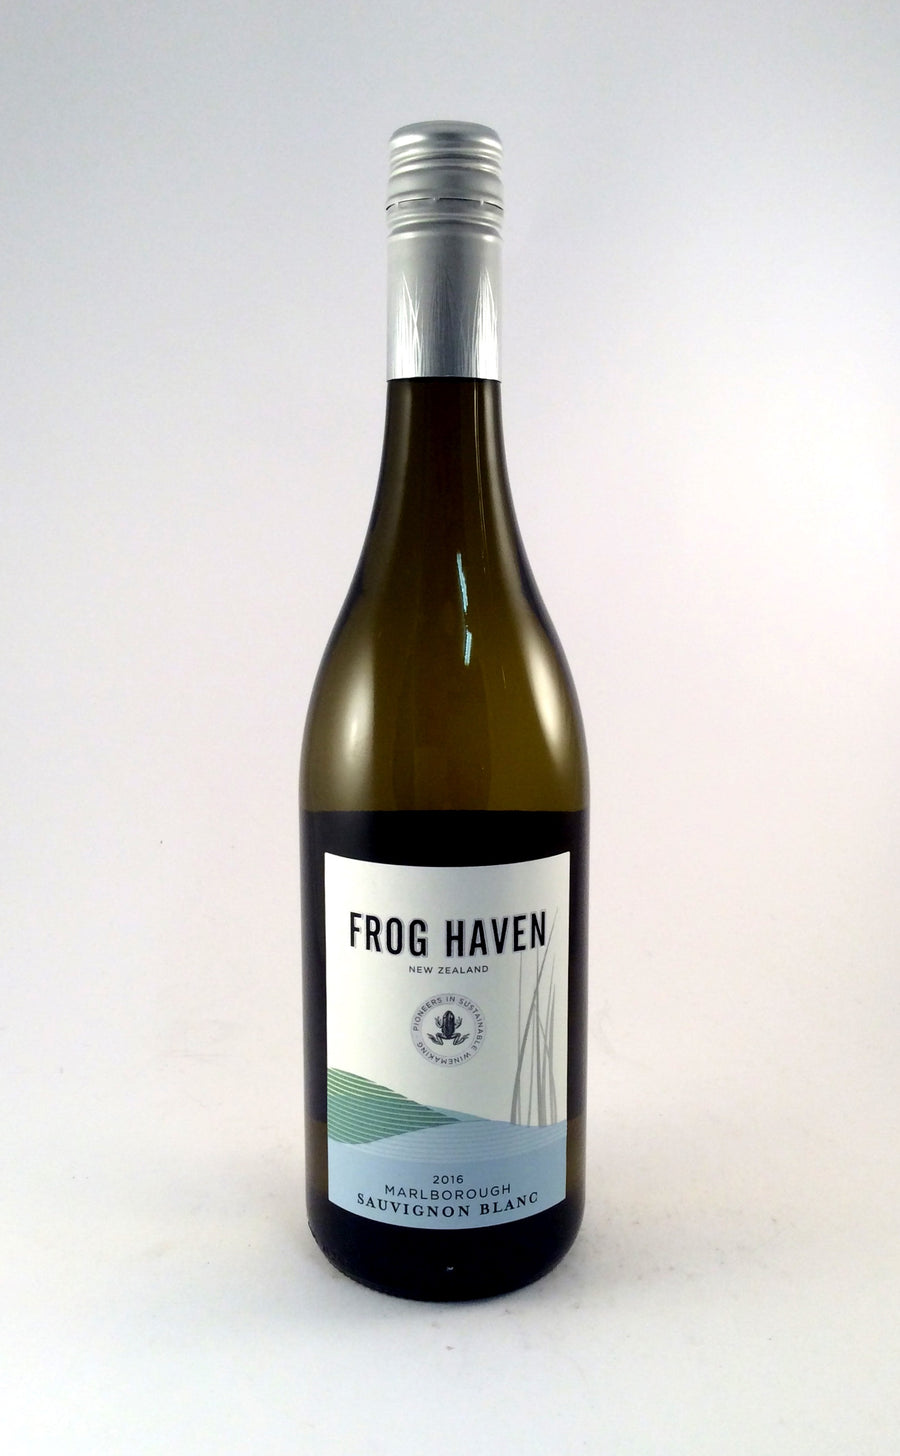 Frog Haven Sauvignon Blanc